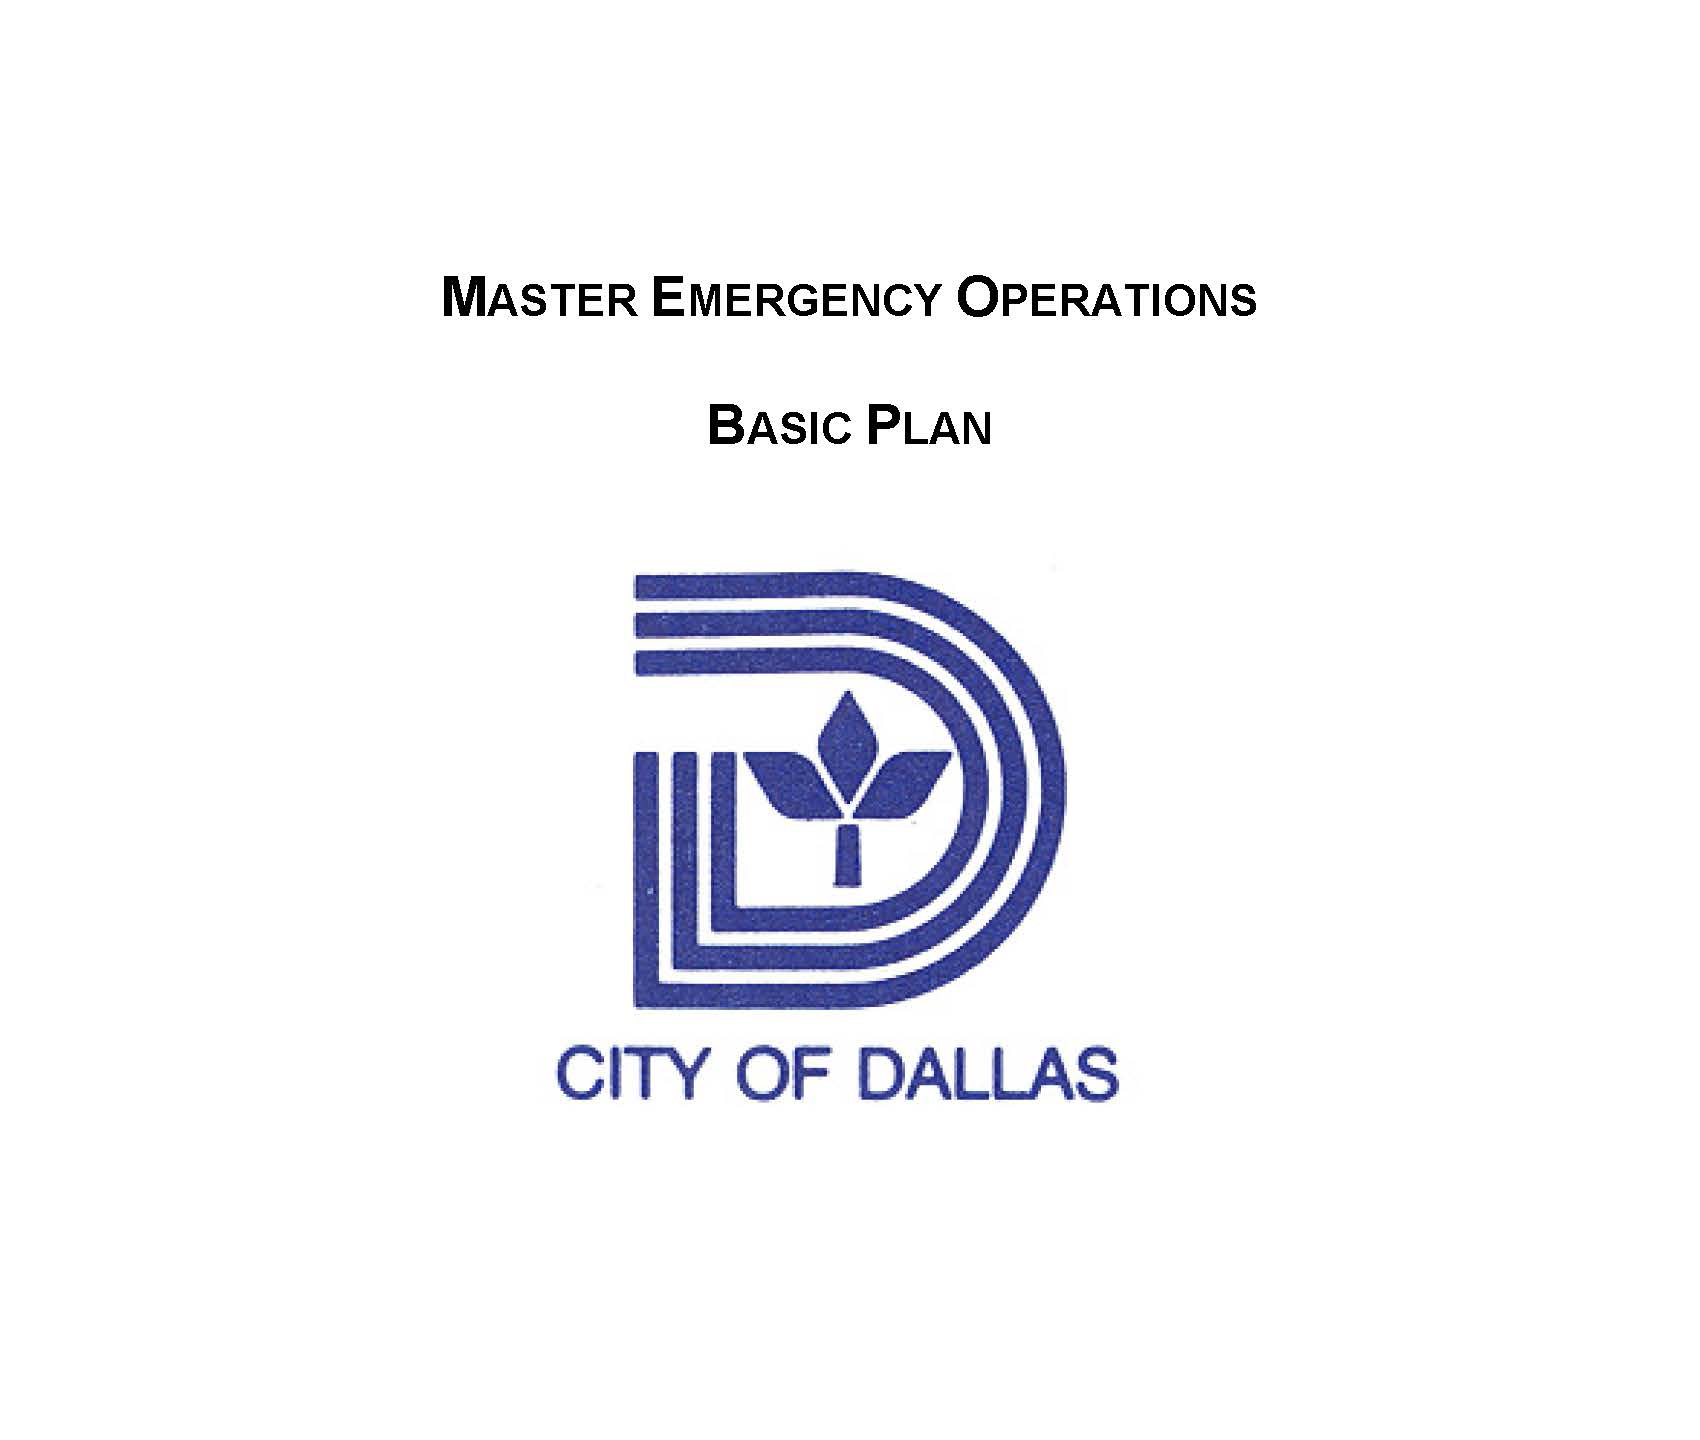 Master Emergency Operations Plan Cover Image